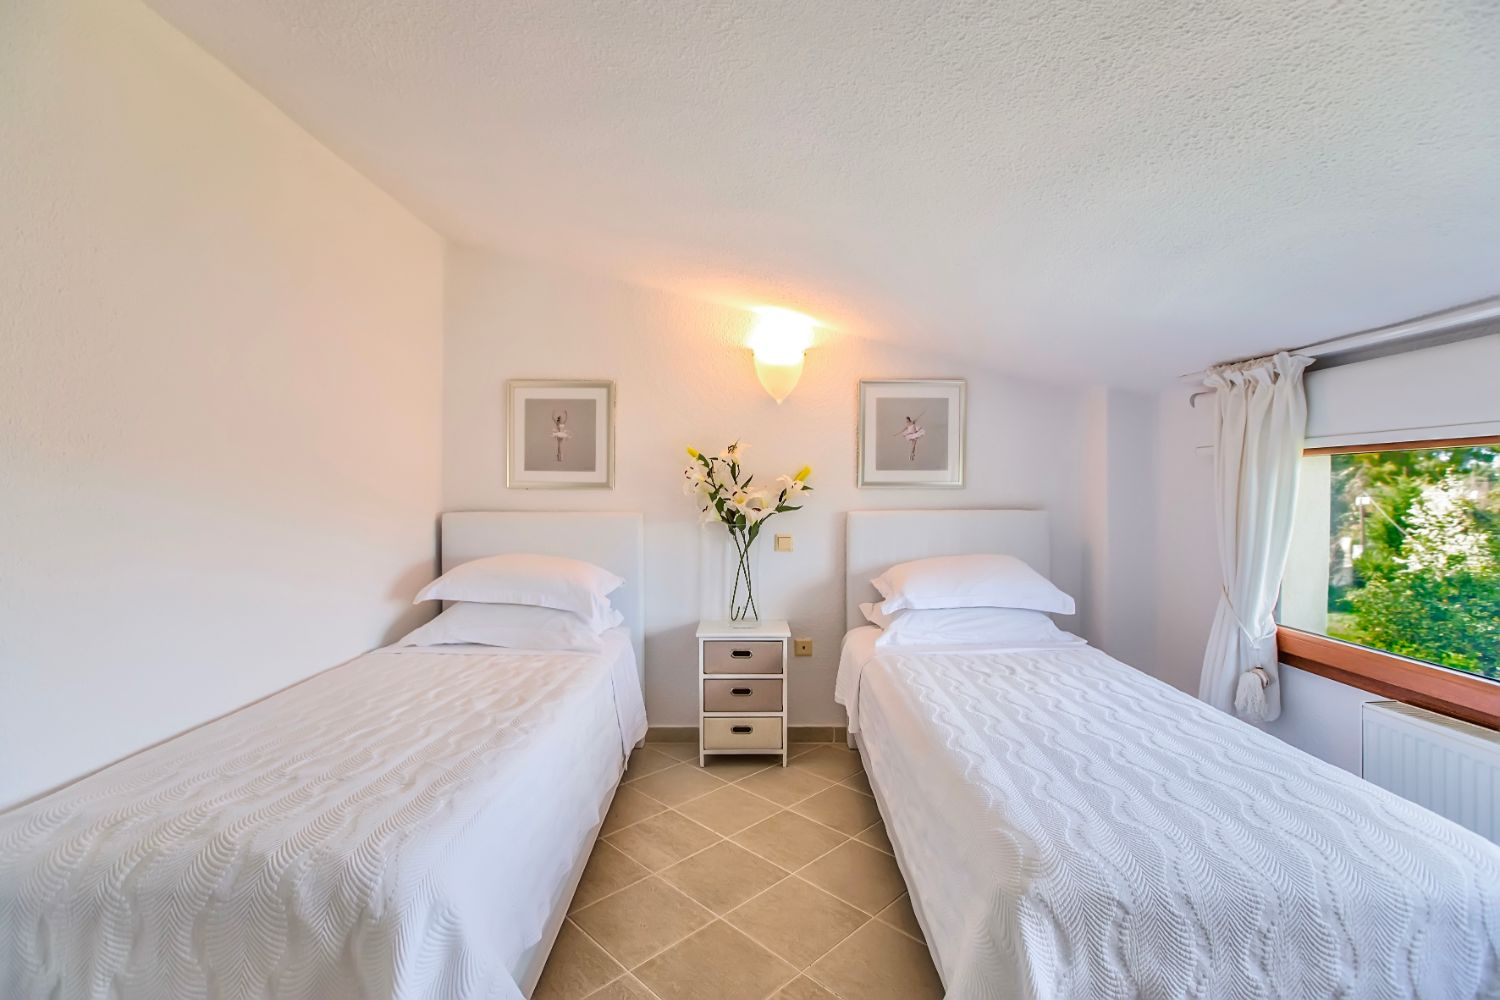 Bedroom 5 with 2 single beds